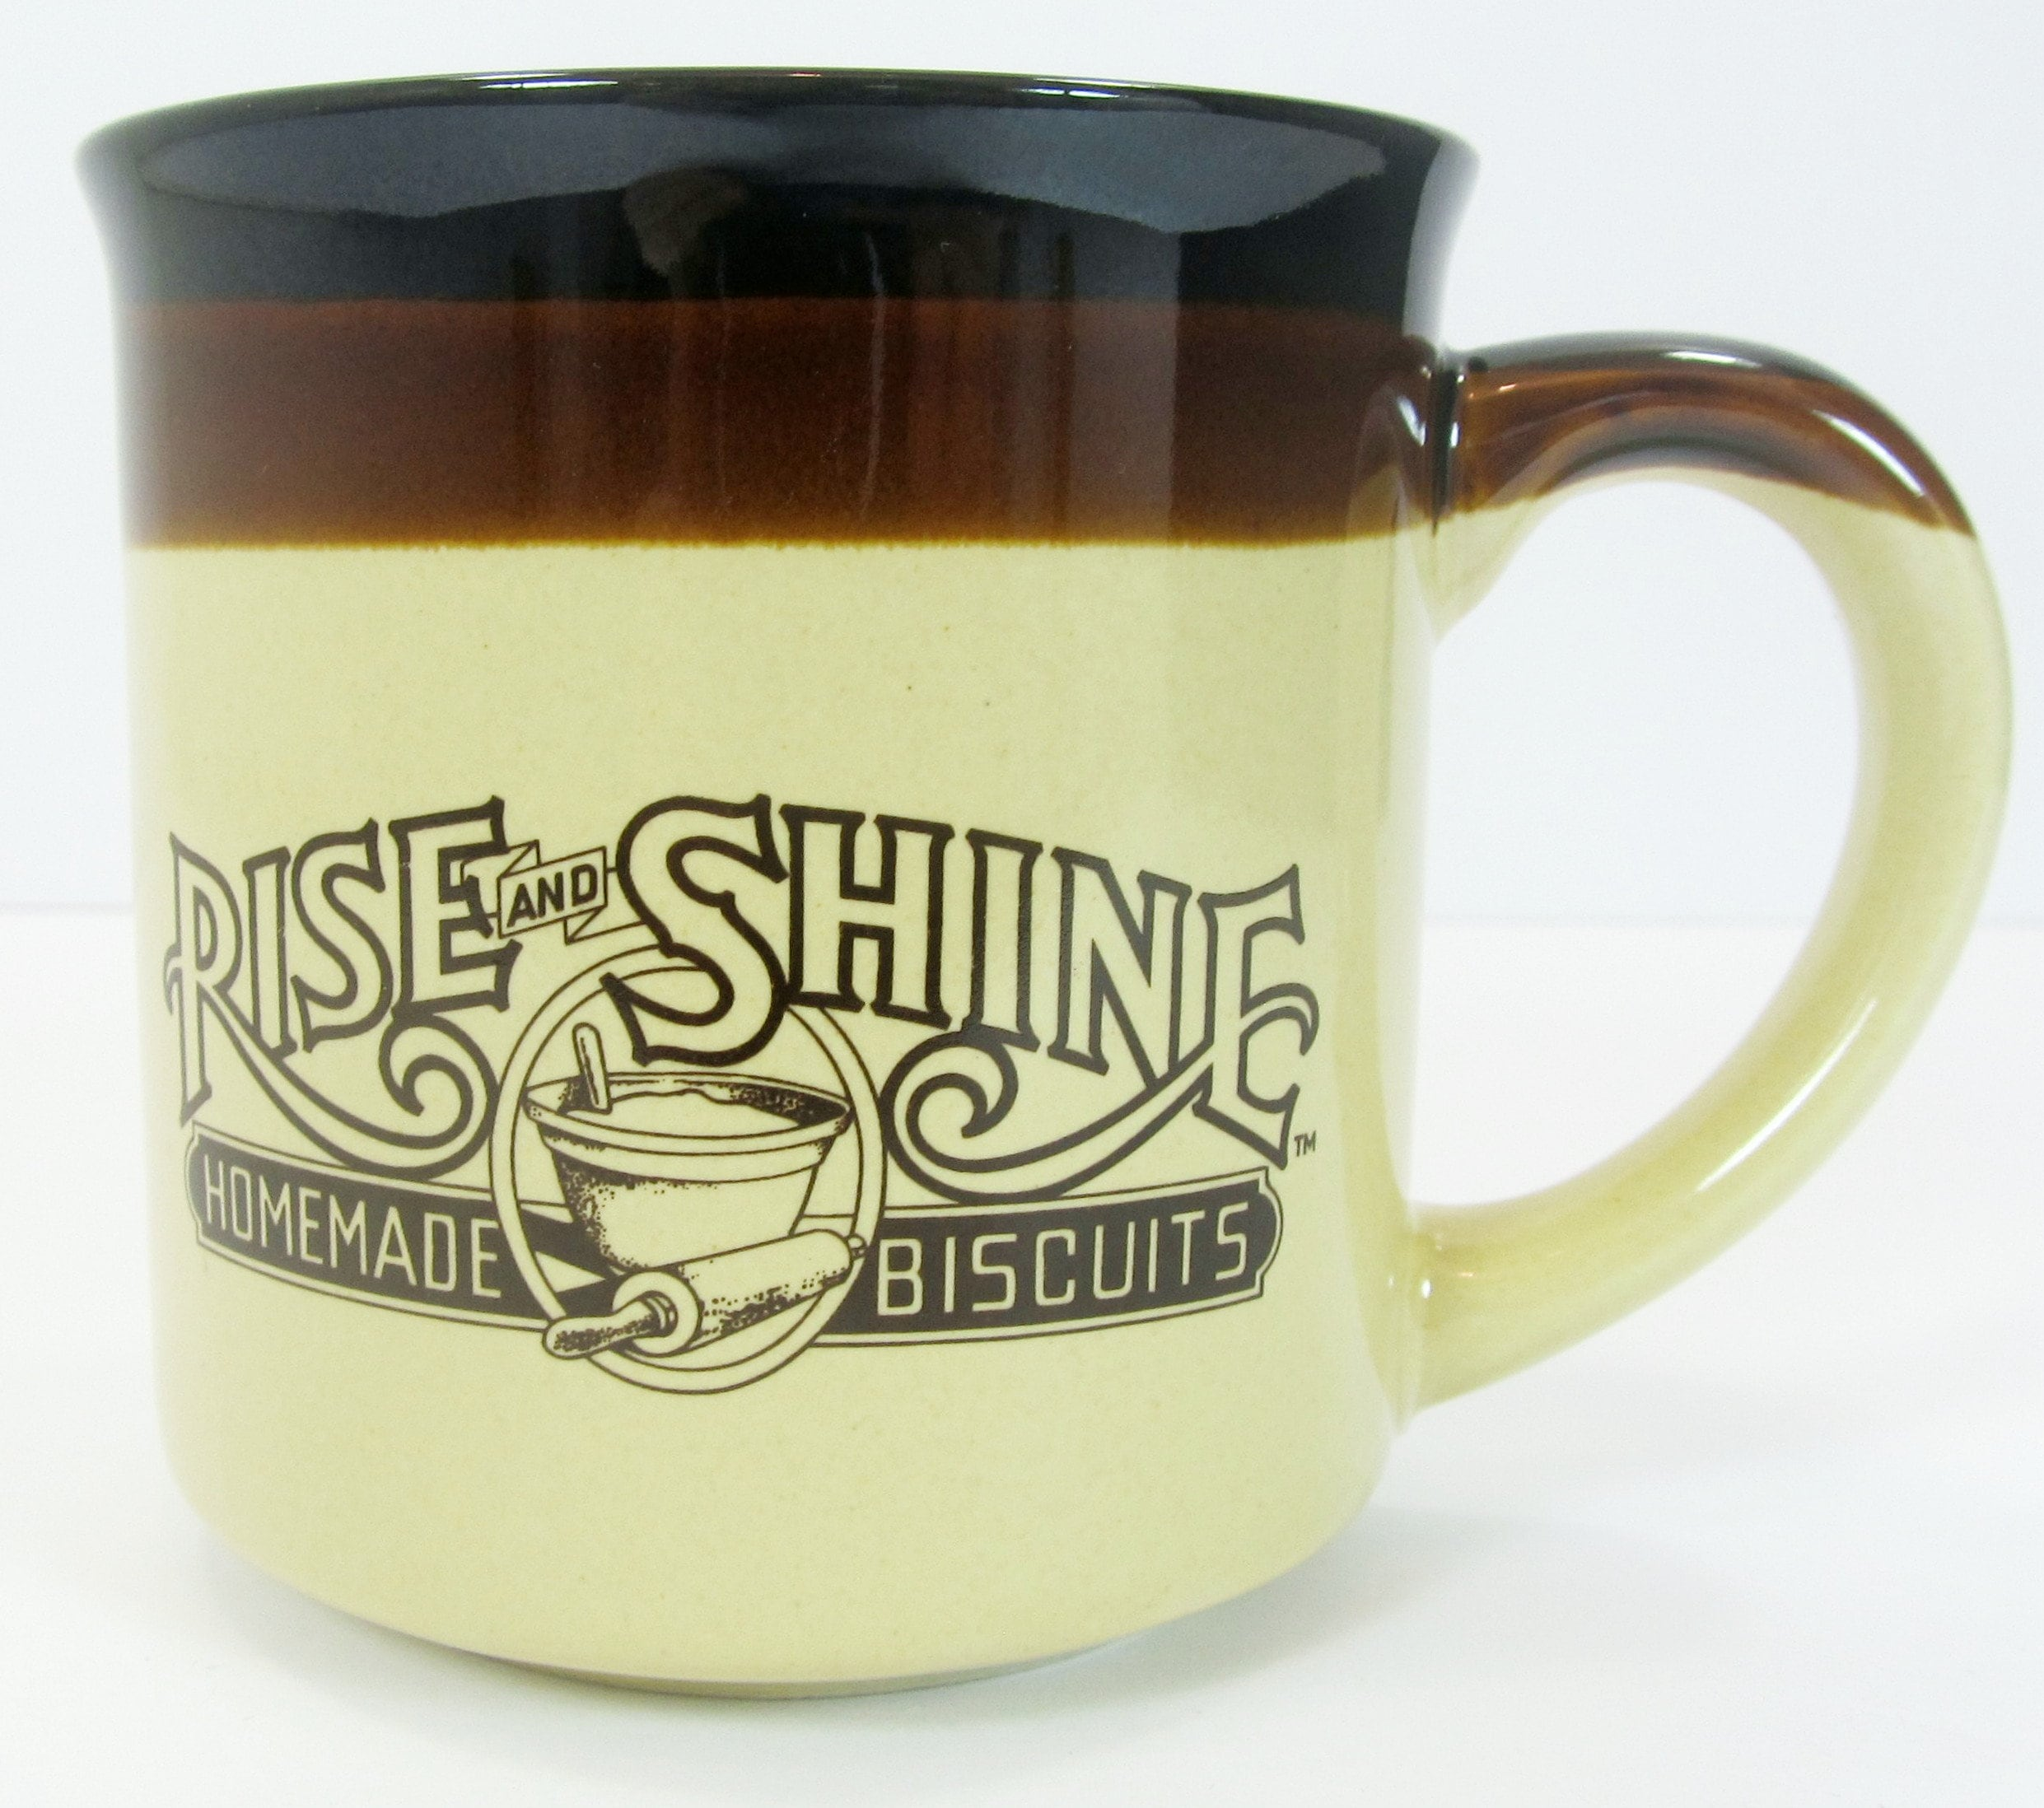 5-Hardee's Vintage Coffee Cup Mug 1986 Rise and Shine Homemade Biscuits